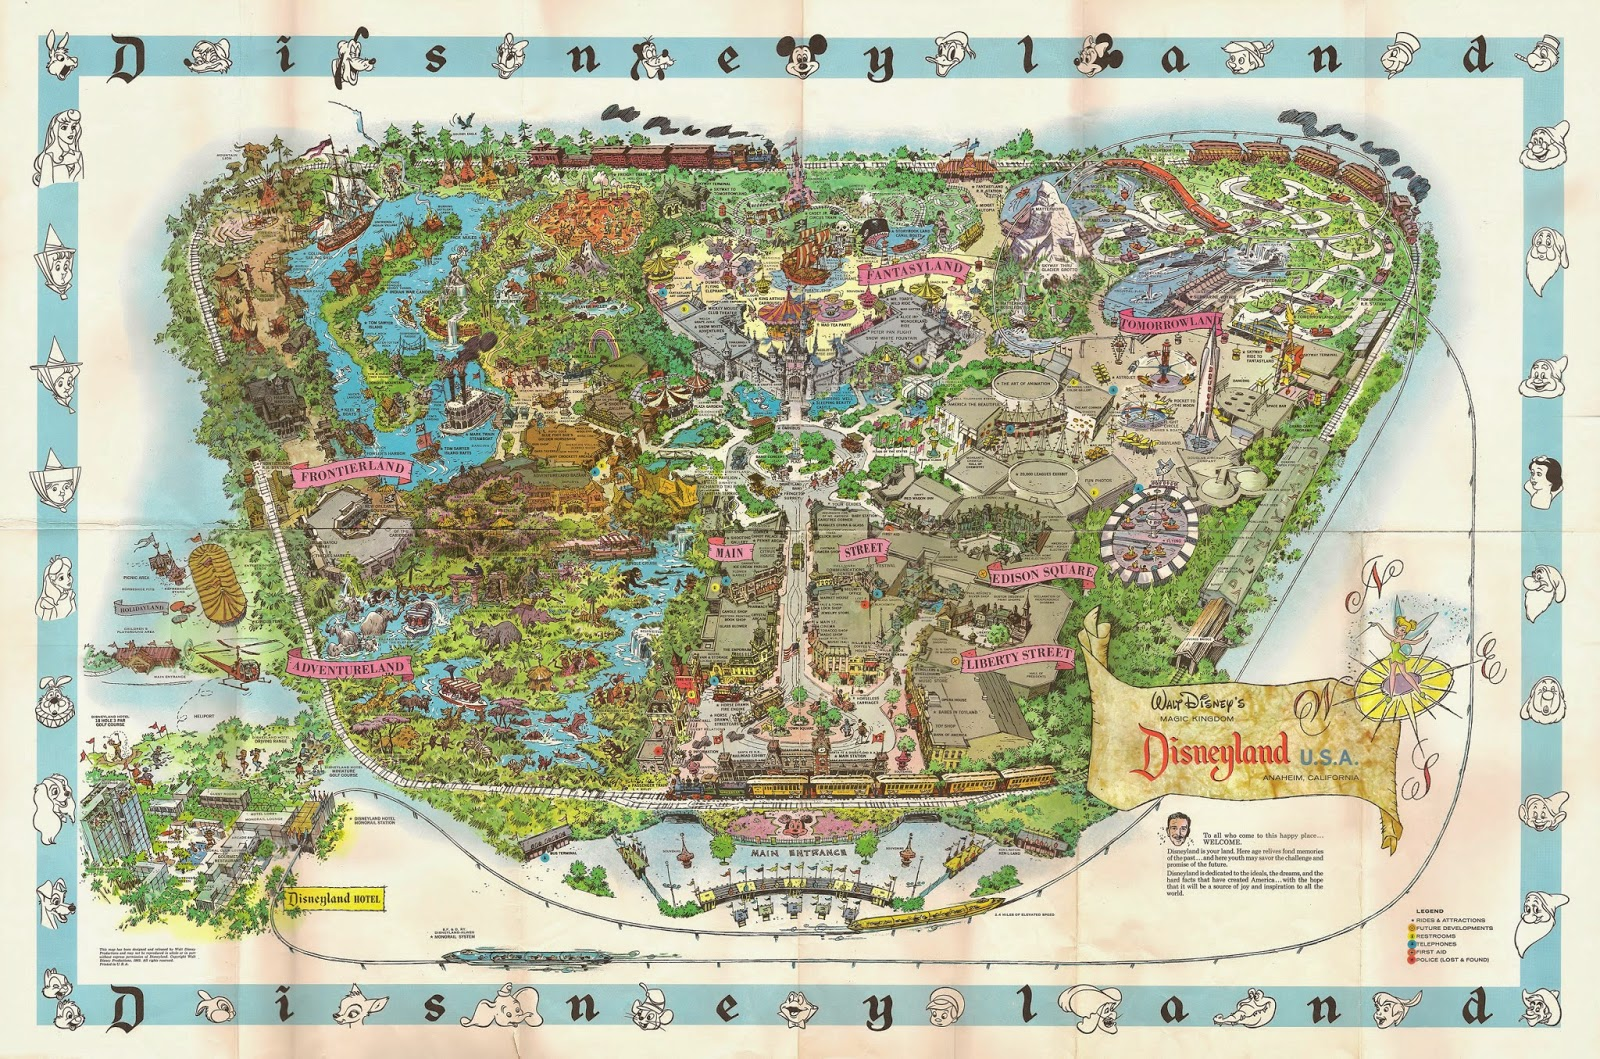 look of vintage paris map html with Disneyland Map Evolution 1955 2015 on 0 16641 19560514 00 besides Brown Paper Texture Or Parchment Paper With Ornamental Border Edge additionally Halloween Scary House Wallpaper furthermore Capas De Facebook  o Fazer likewise 2012 08 01 archive.